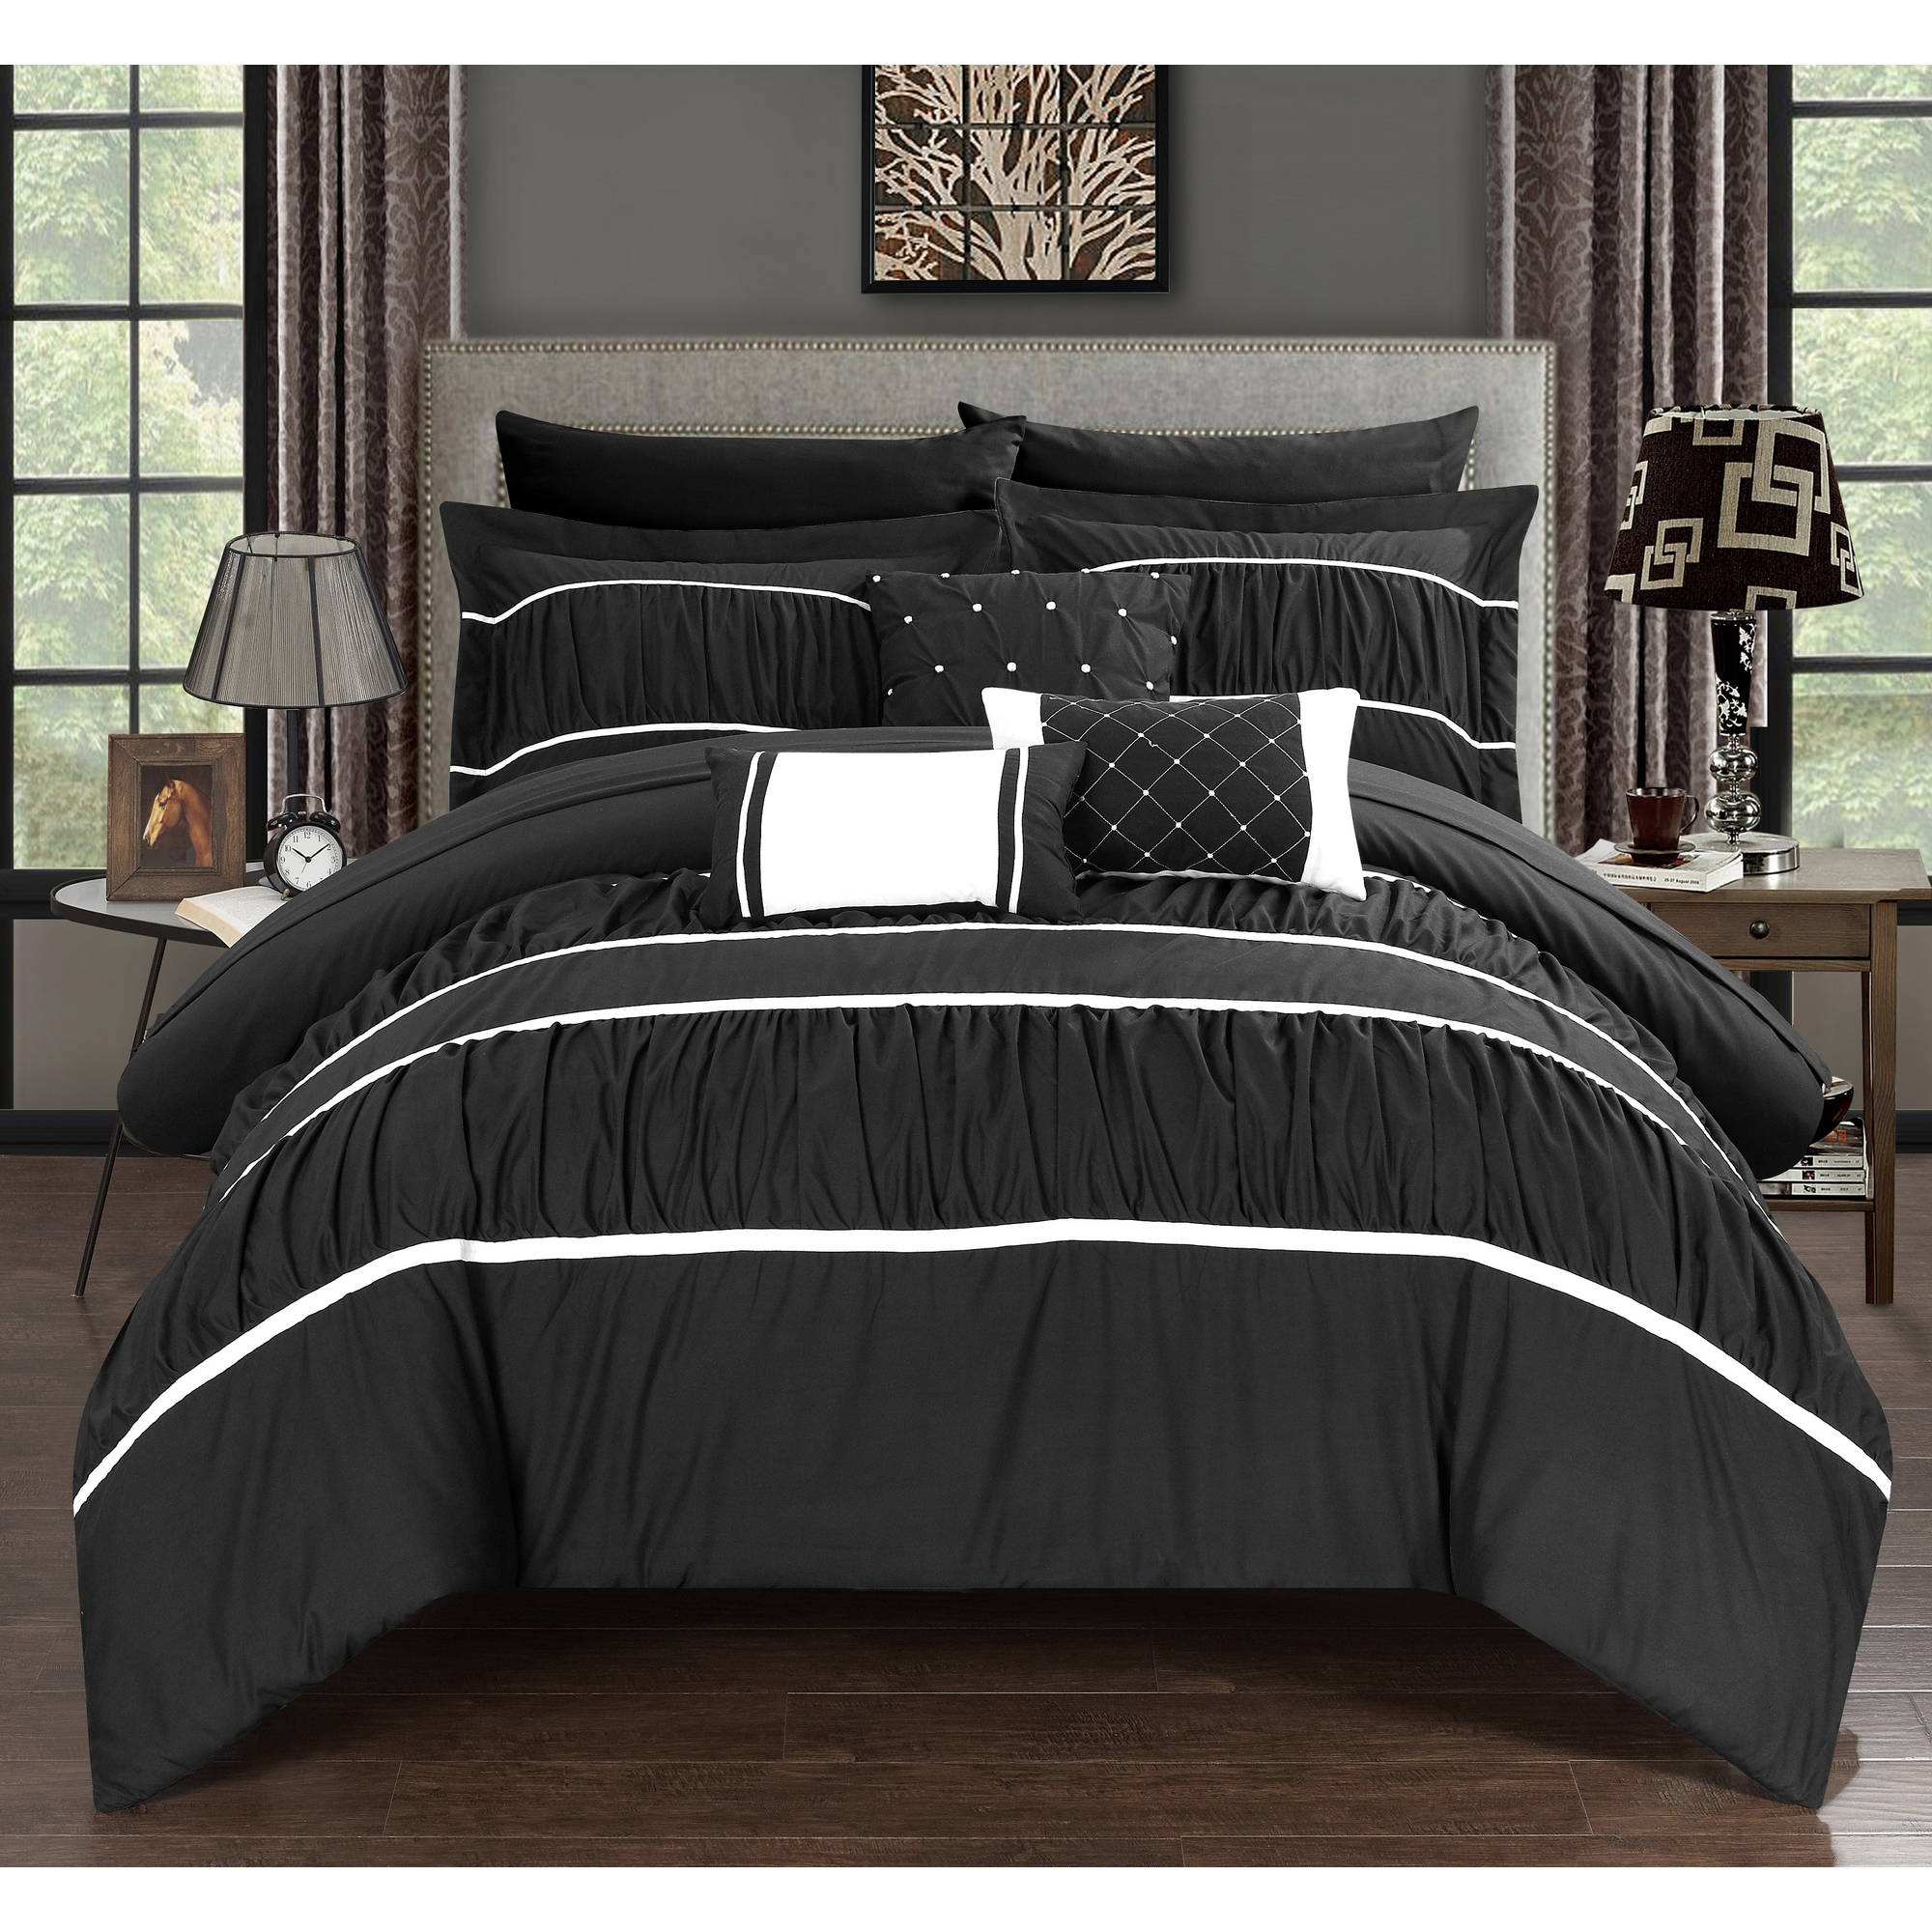 Wanda 10-Piece Wanda Bed in a Bag Bedding Comforter Set